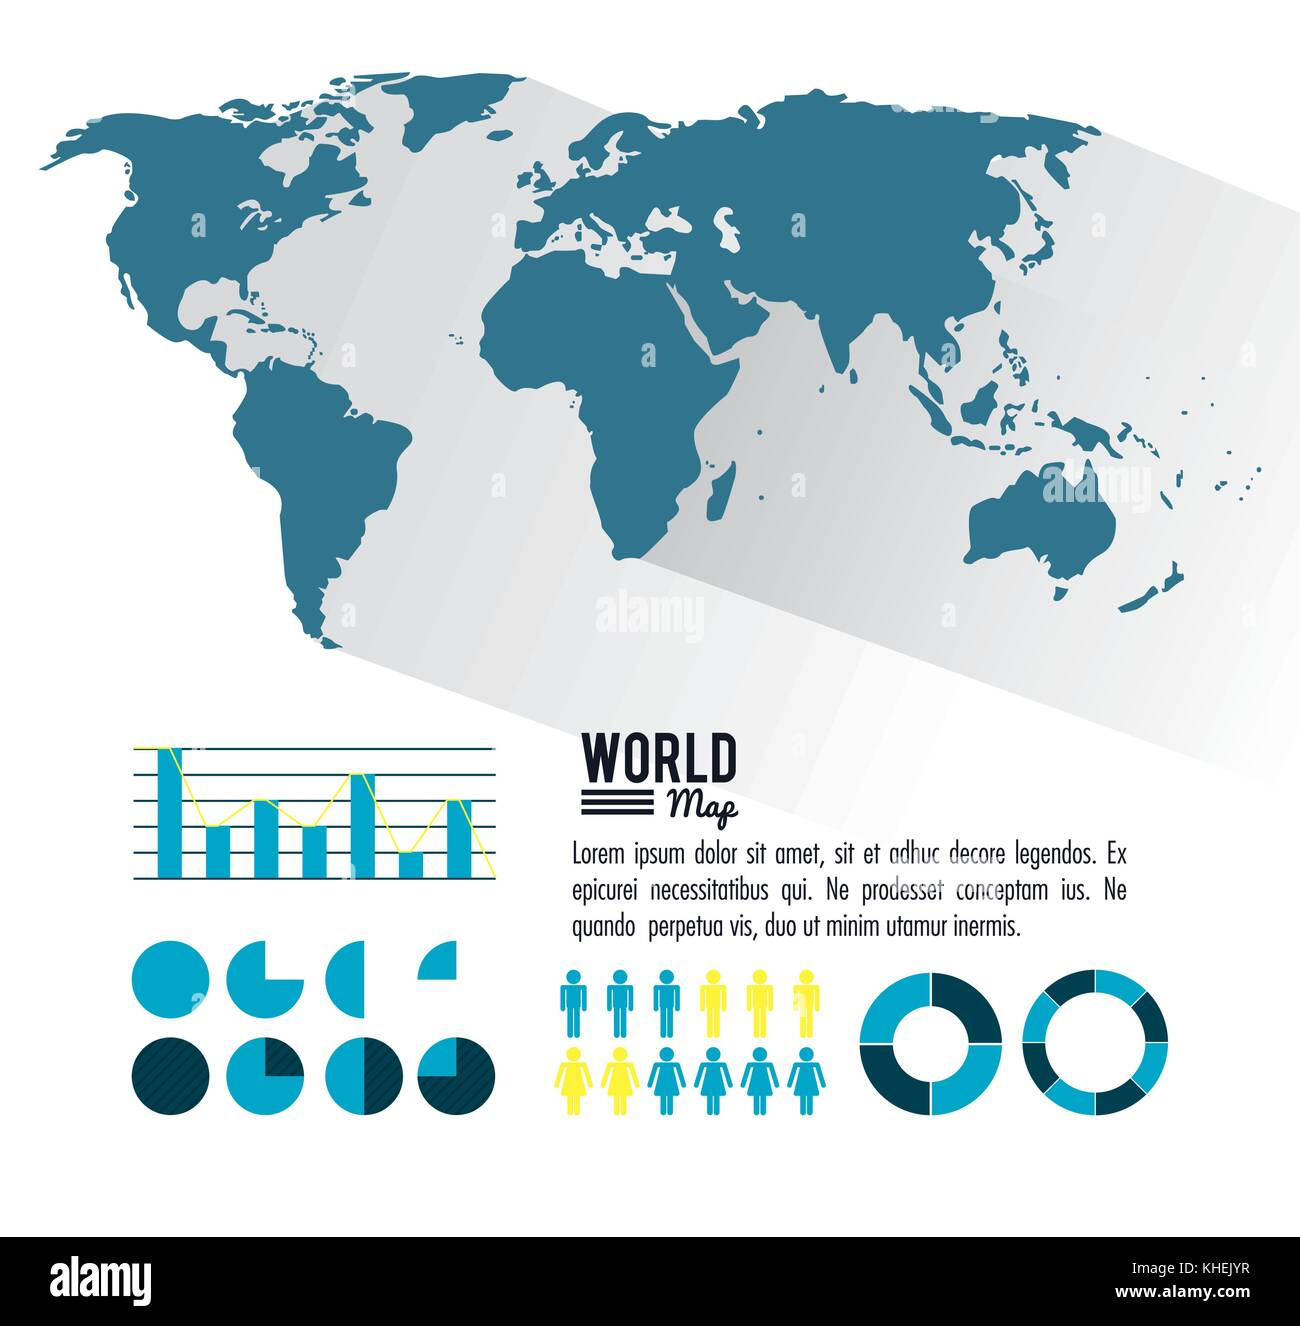 World Circle Graph Stock Photos & World Circle Graph Stock ...